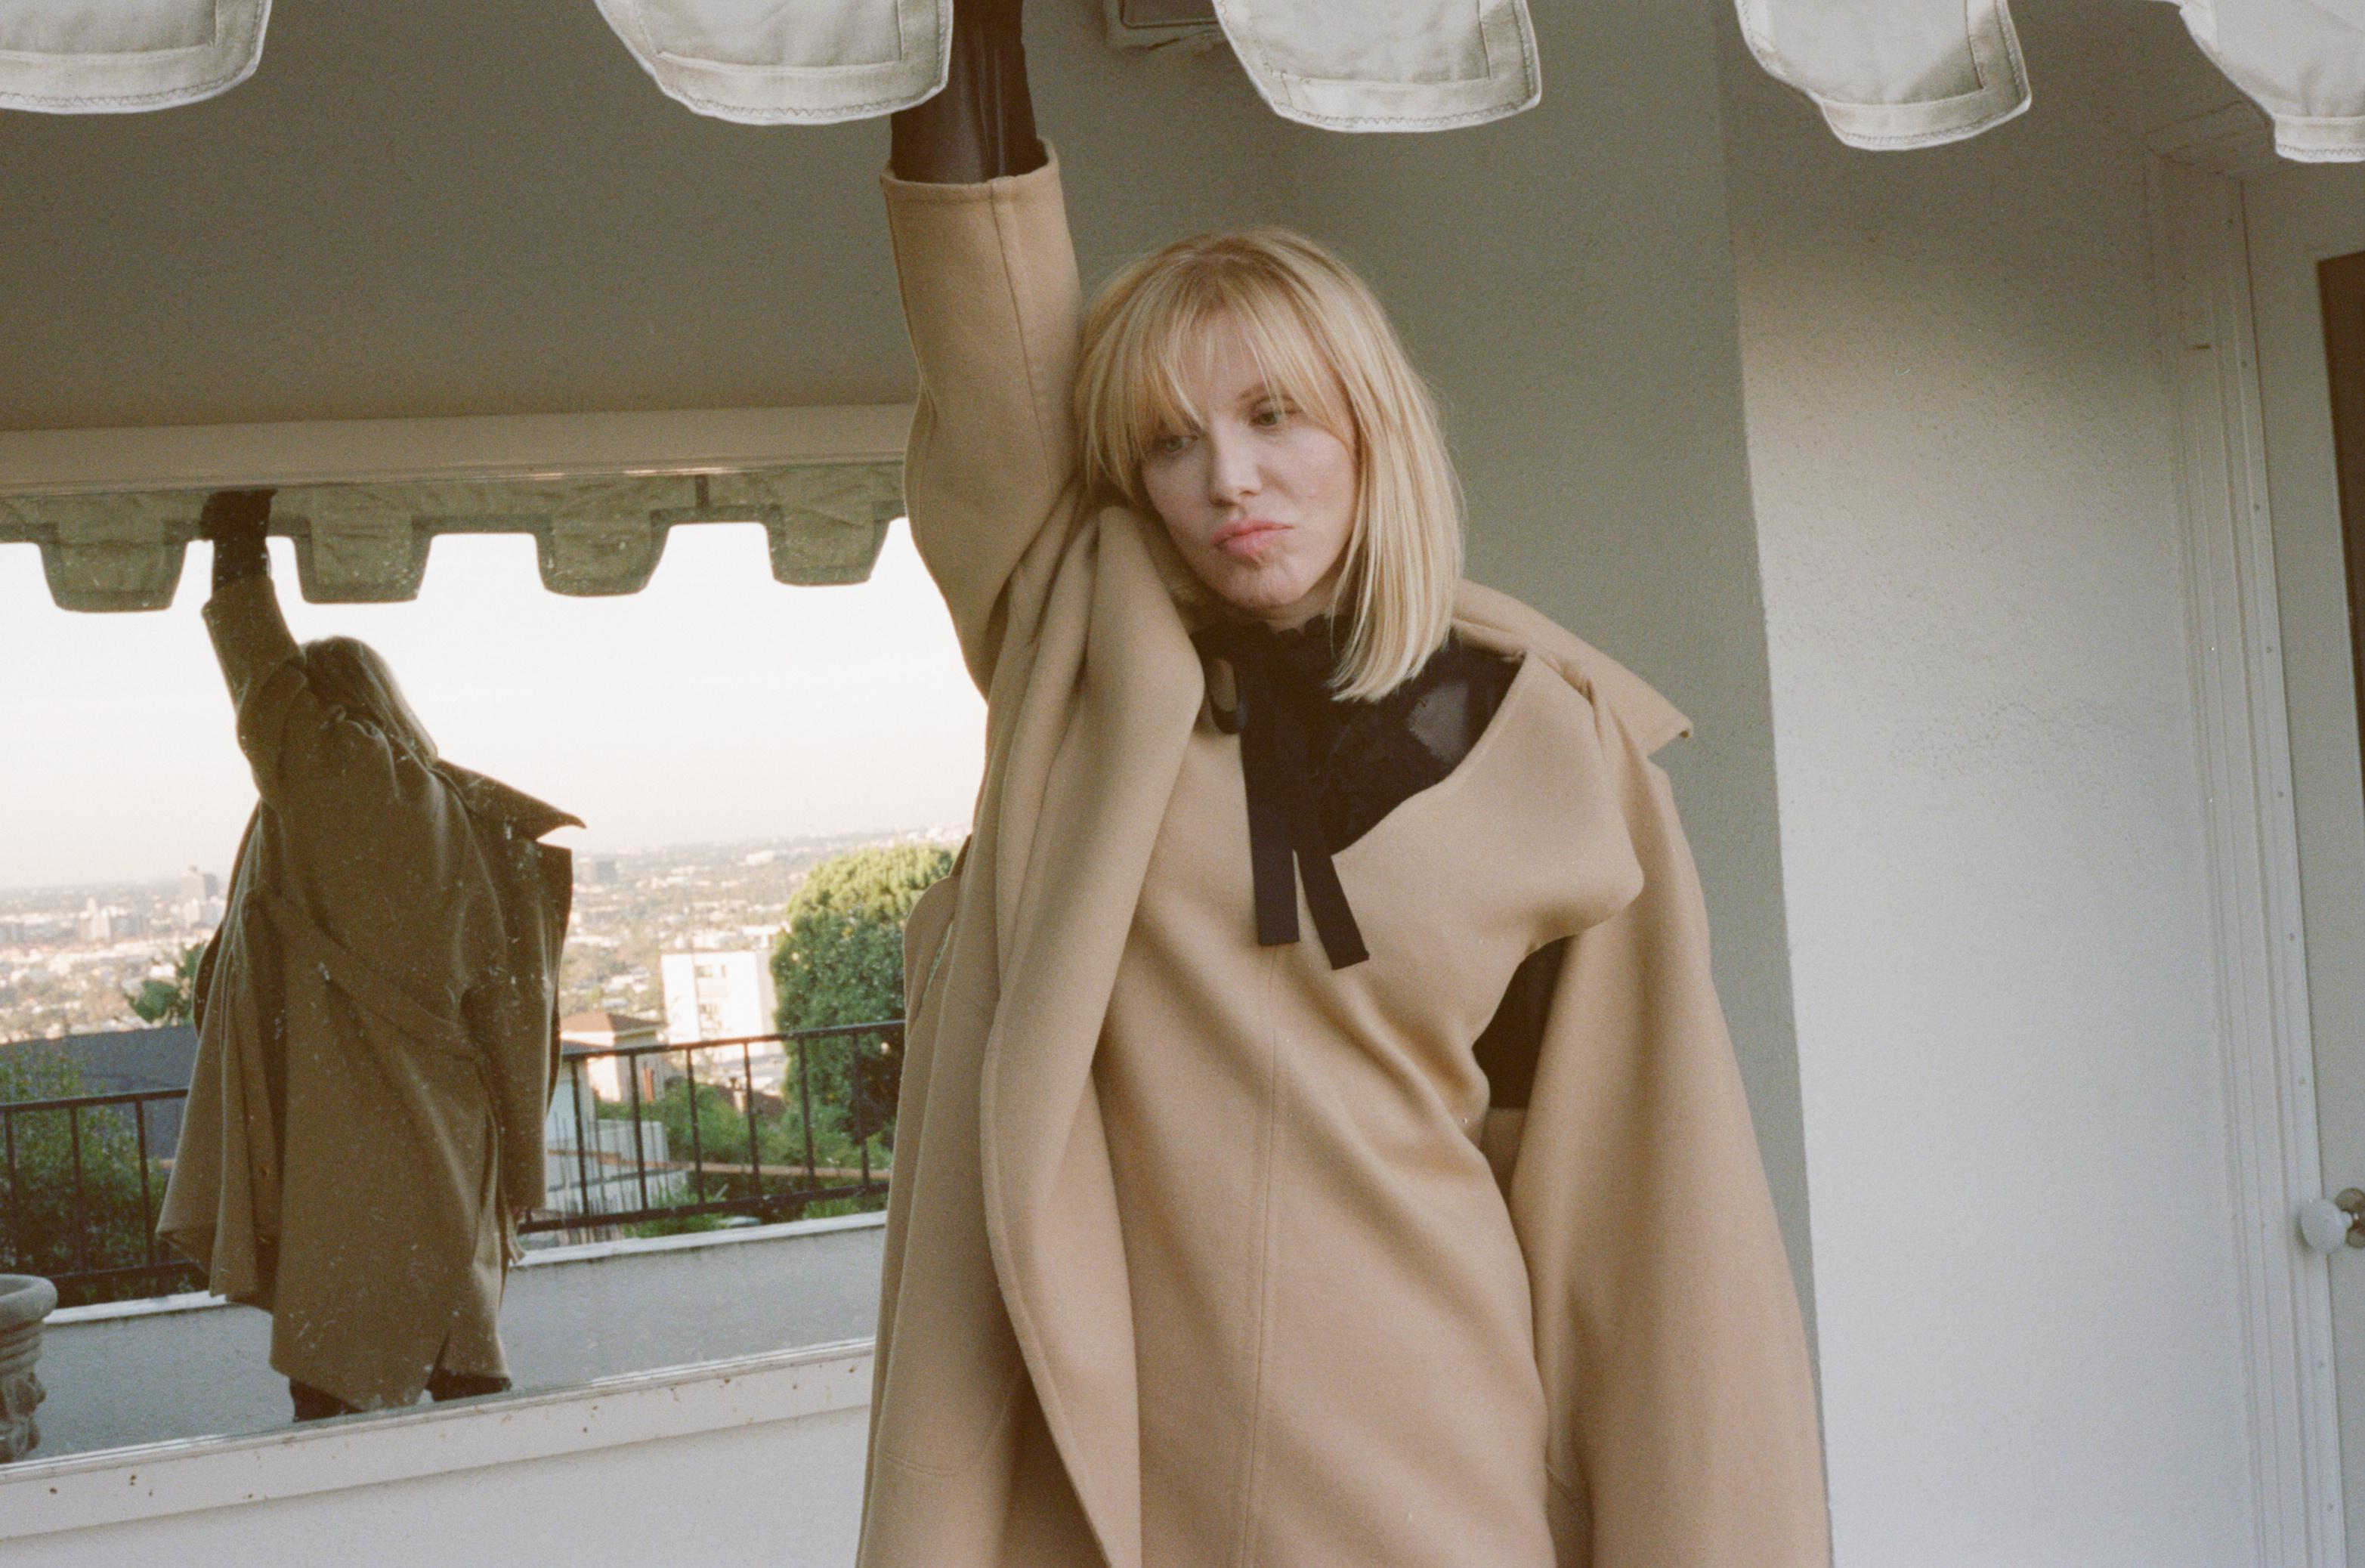 'I talk to my clothes': why Courtney Love is selling her best-known outfits